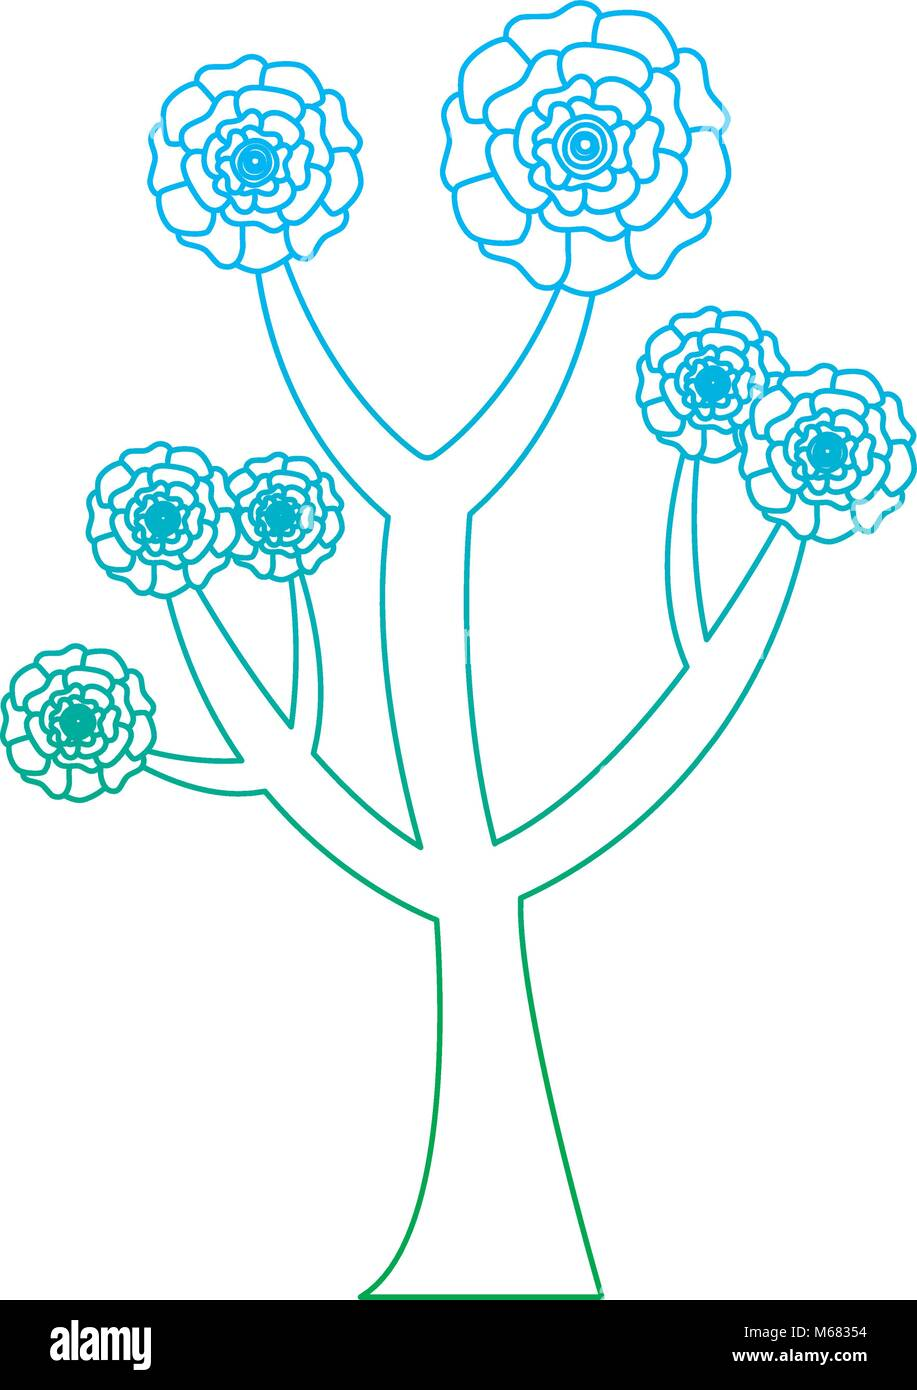 Beautiful tree with flowers carnation decoration vector illustration beautiful tree with flowers carnation decoration vector illustration degrade line color design ccuart Gallery